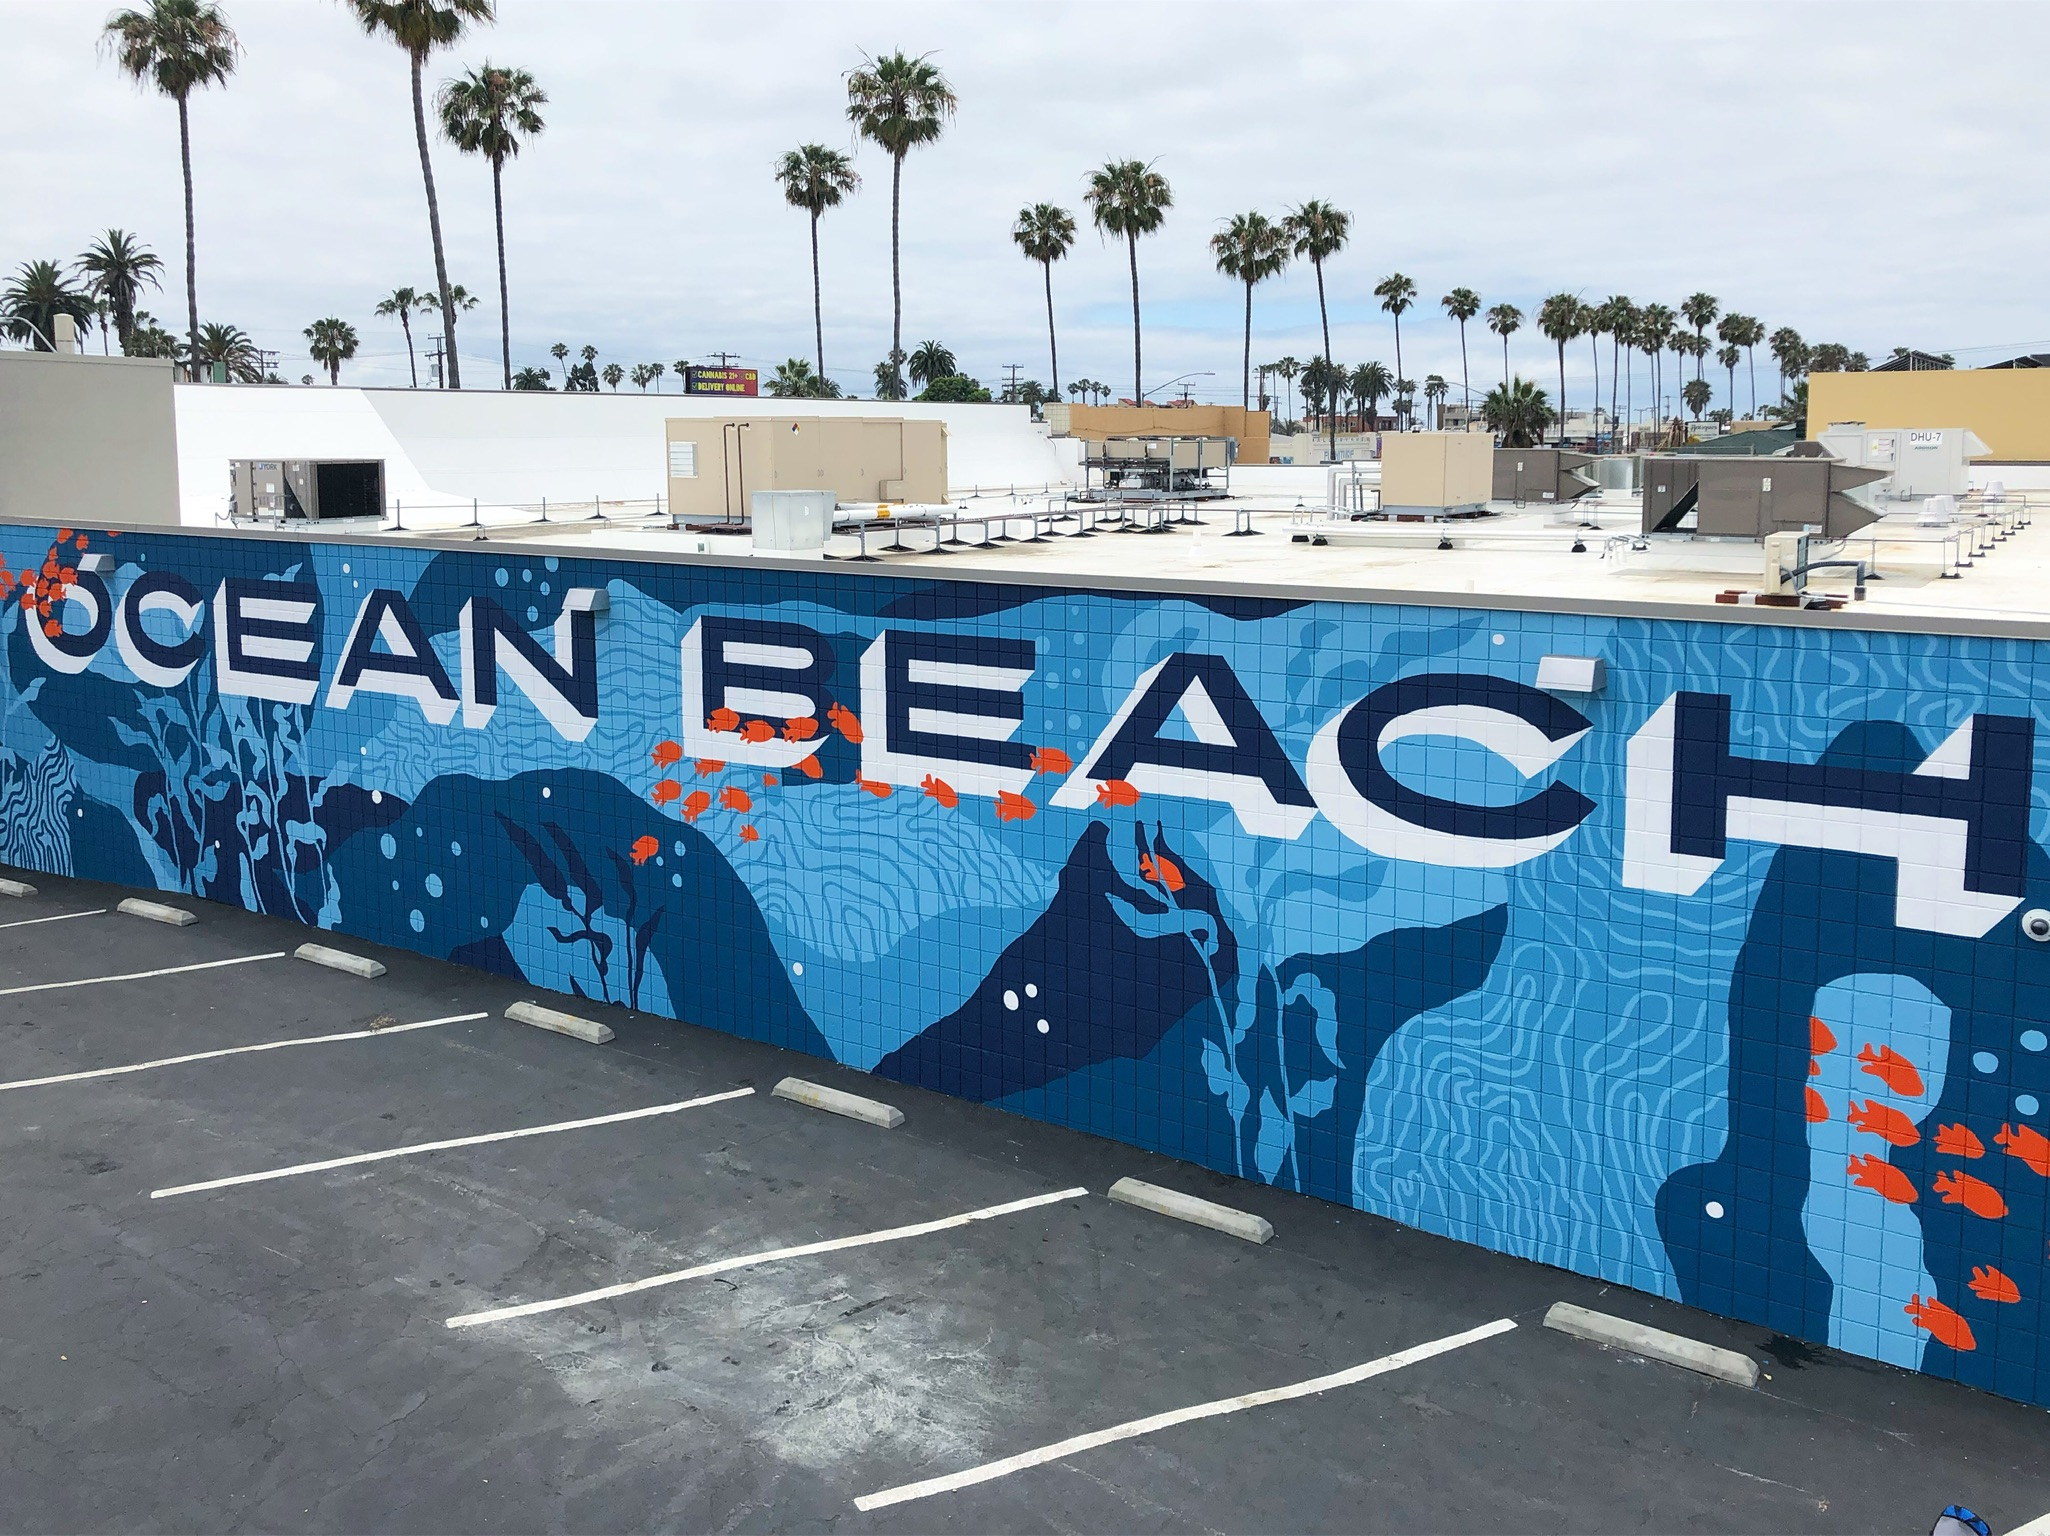 Custom Hand Painted Target Ocean Beach Mural with Lettering, Coral, Seaweed, Fish, and Waves by Pandr